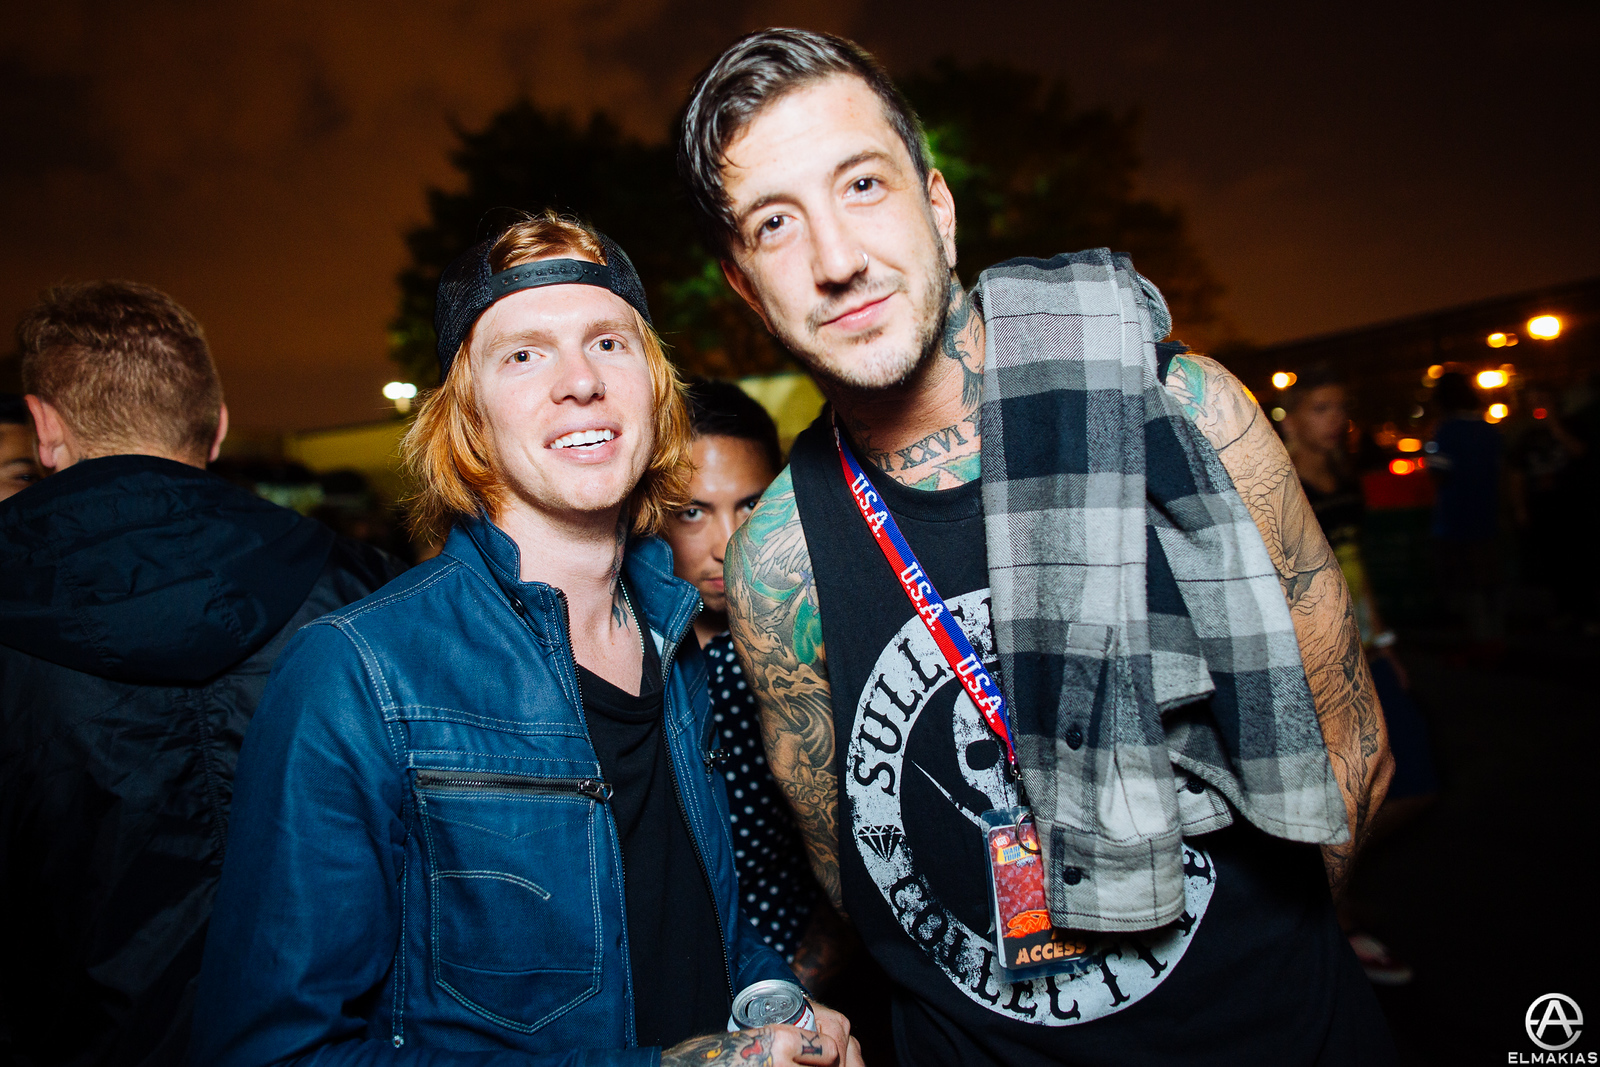 Alan Ashby and Austin Carlile of Of Mice & Men